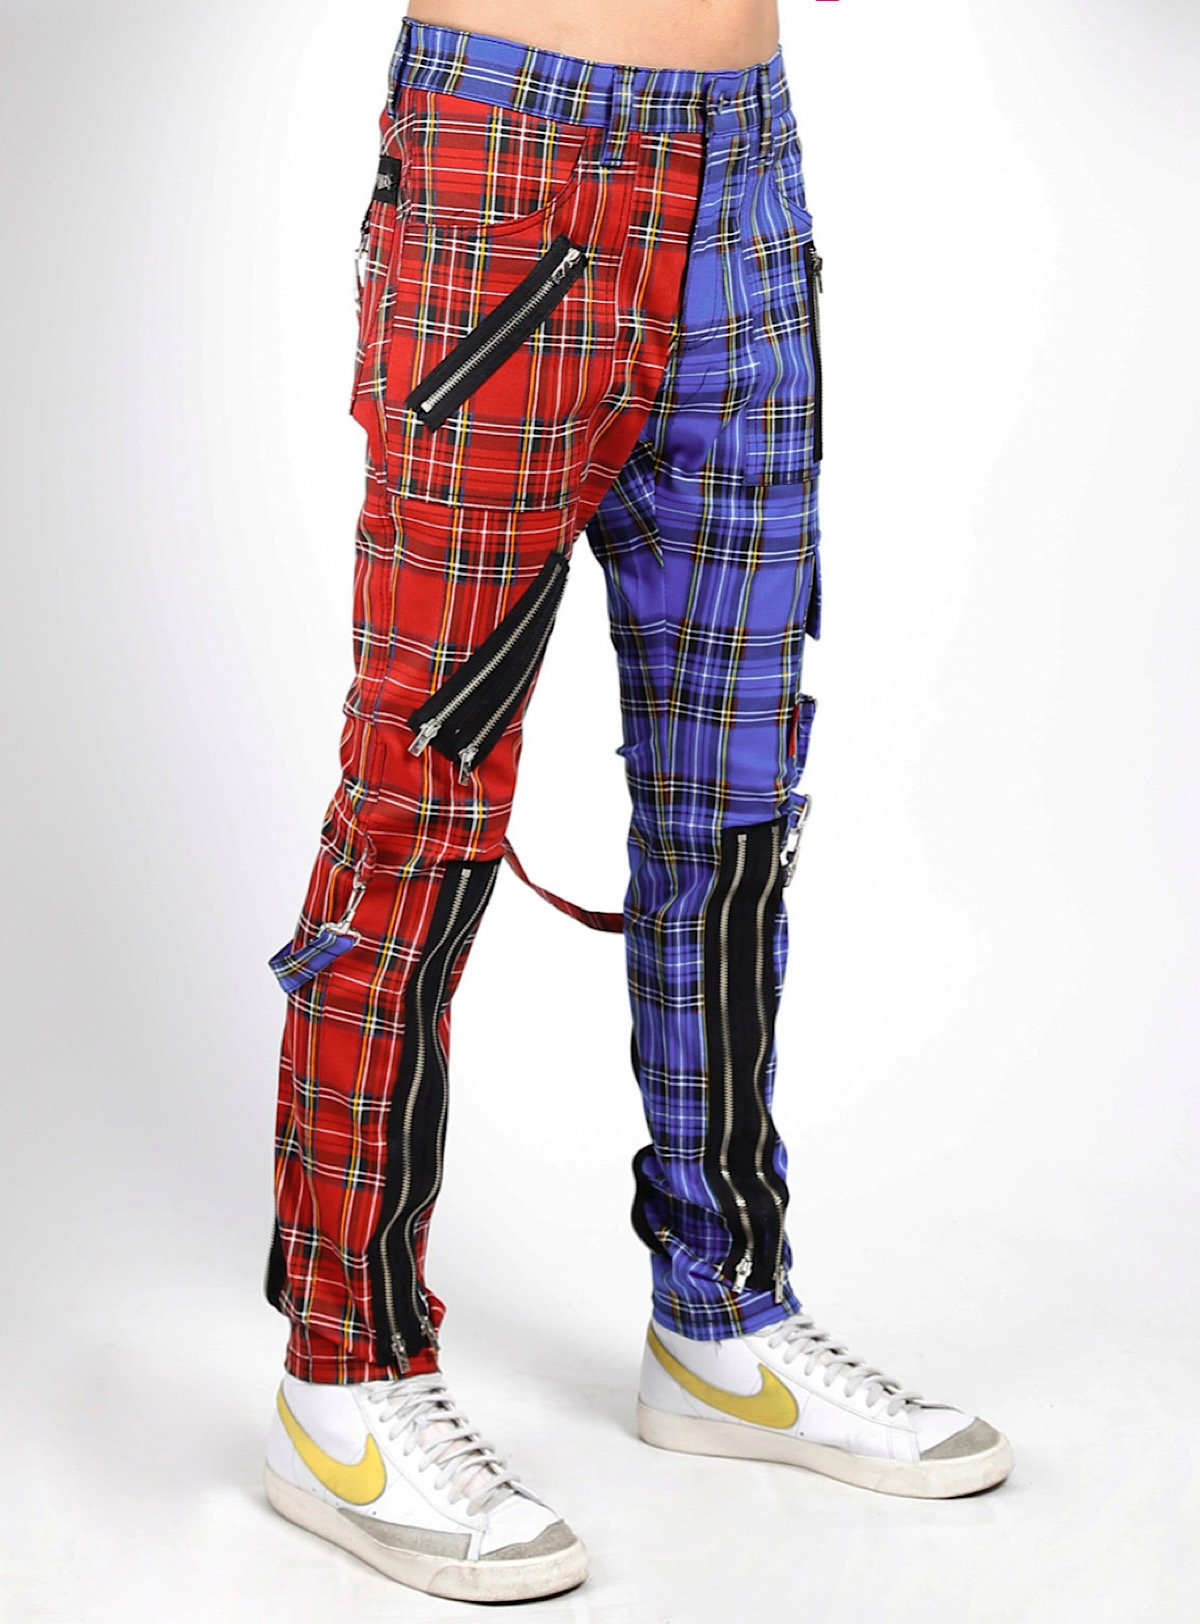 Buyer's Choice Pants - Madness Pant - Red and Purple Plaid